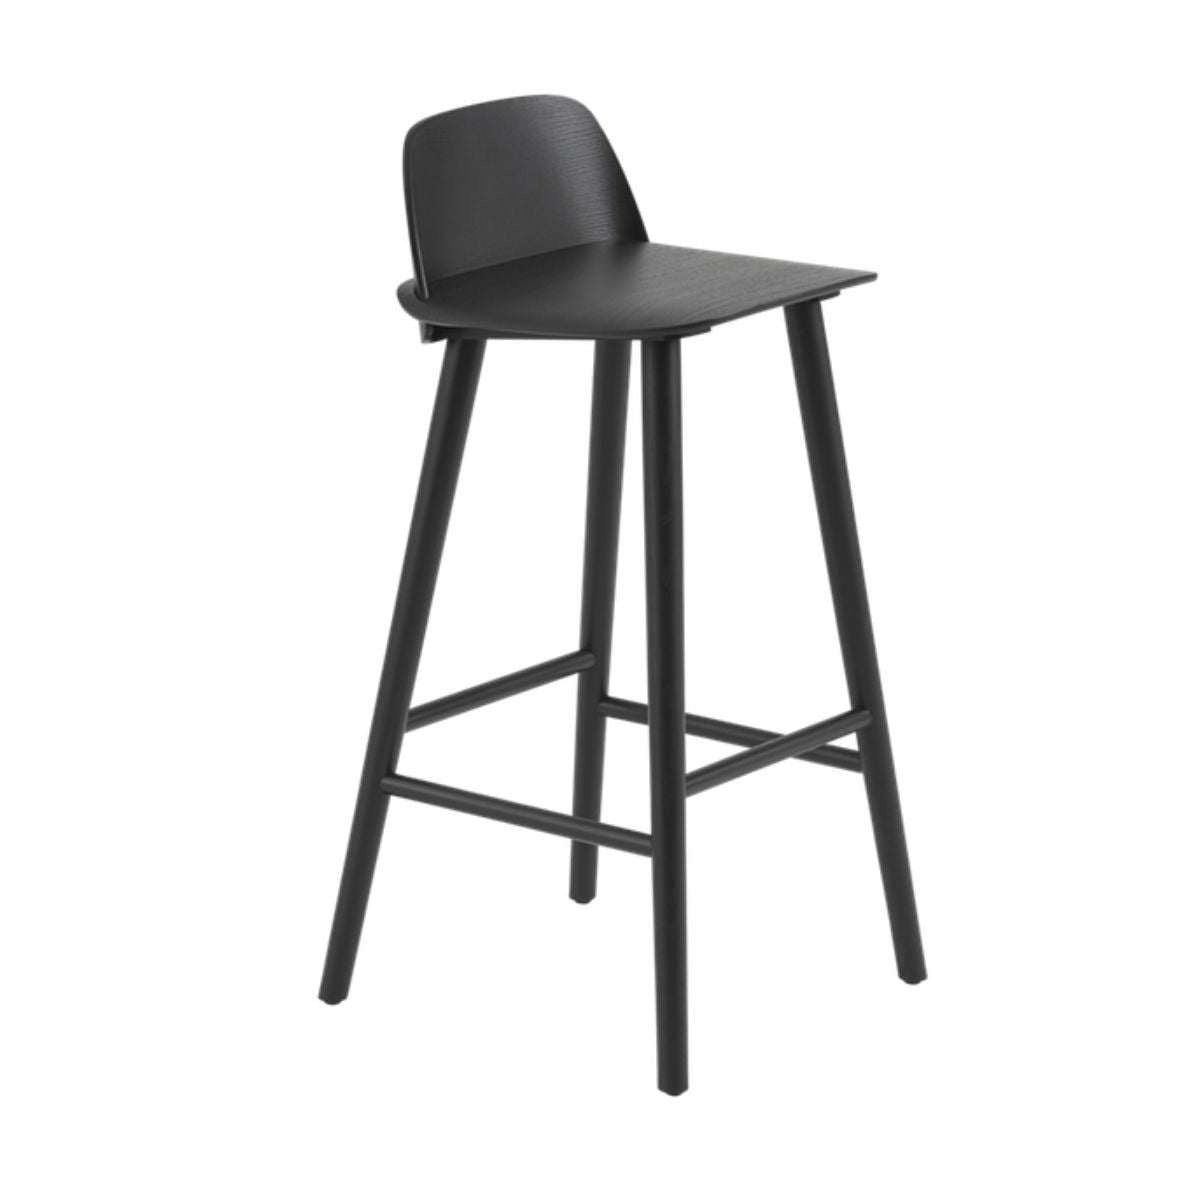 Muuto Nerd bar stool 65cm , black